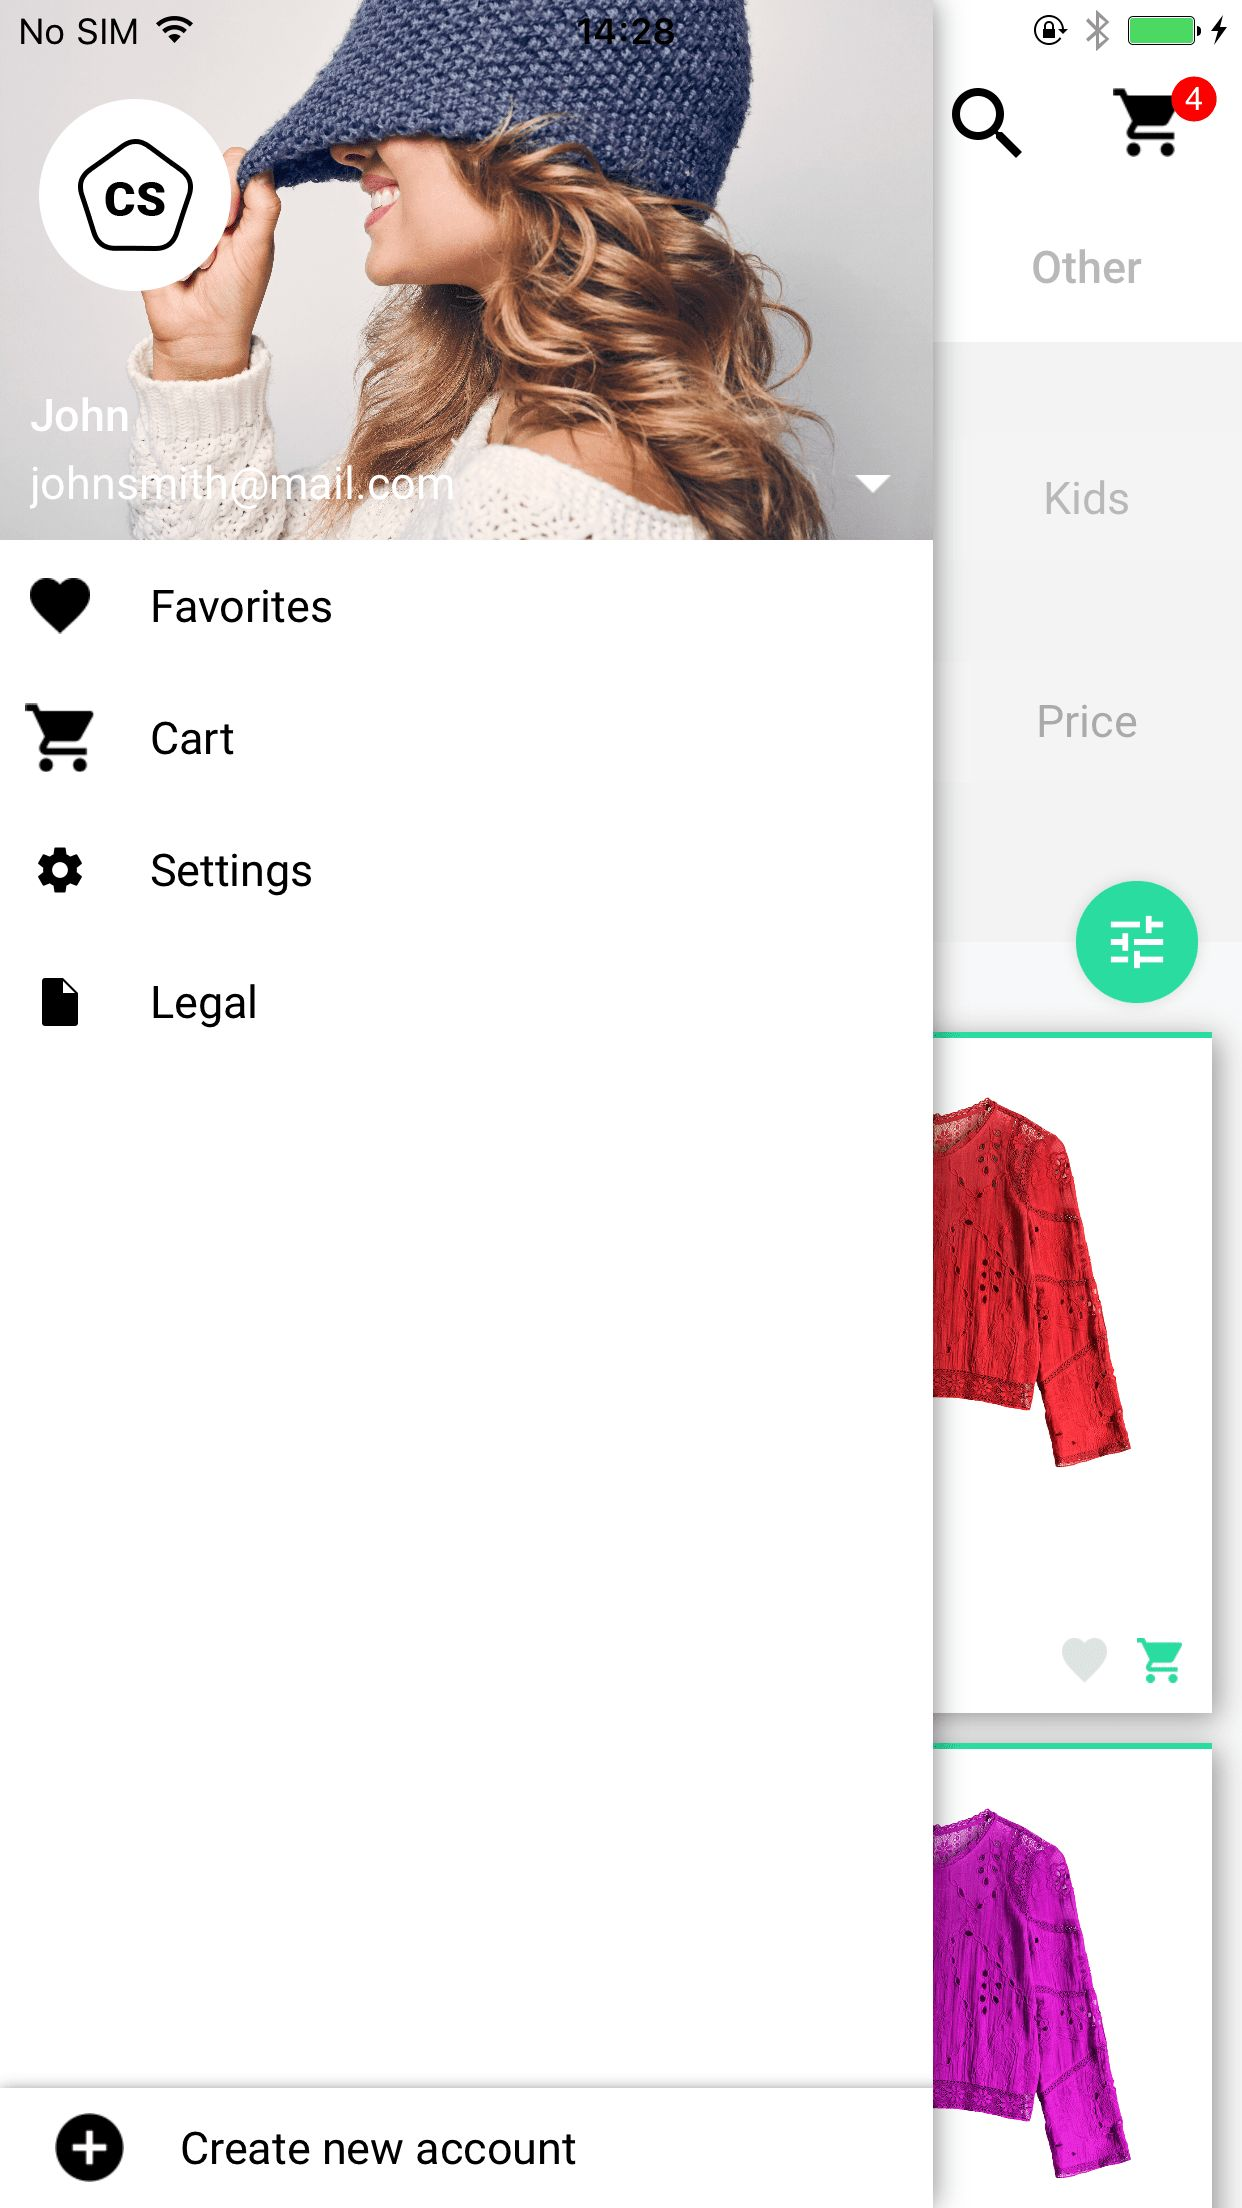 Ivory Shop - iOS eCommerce App Screenshot 6